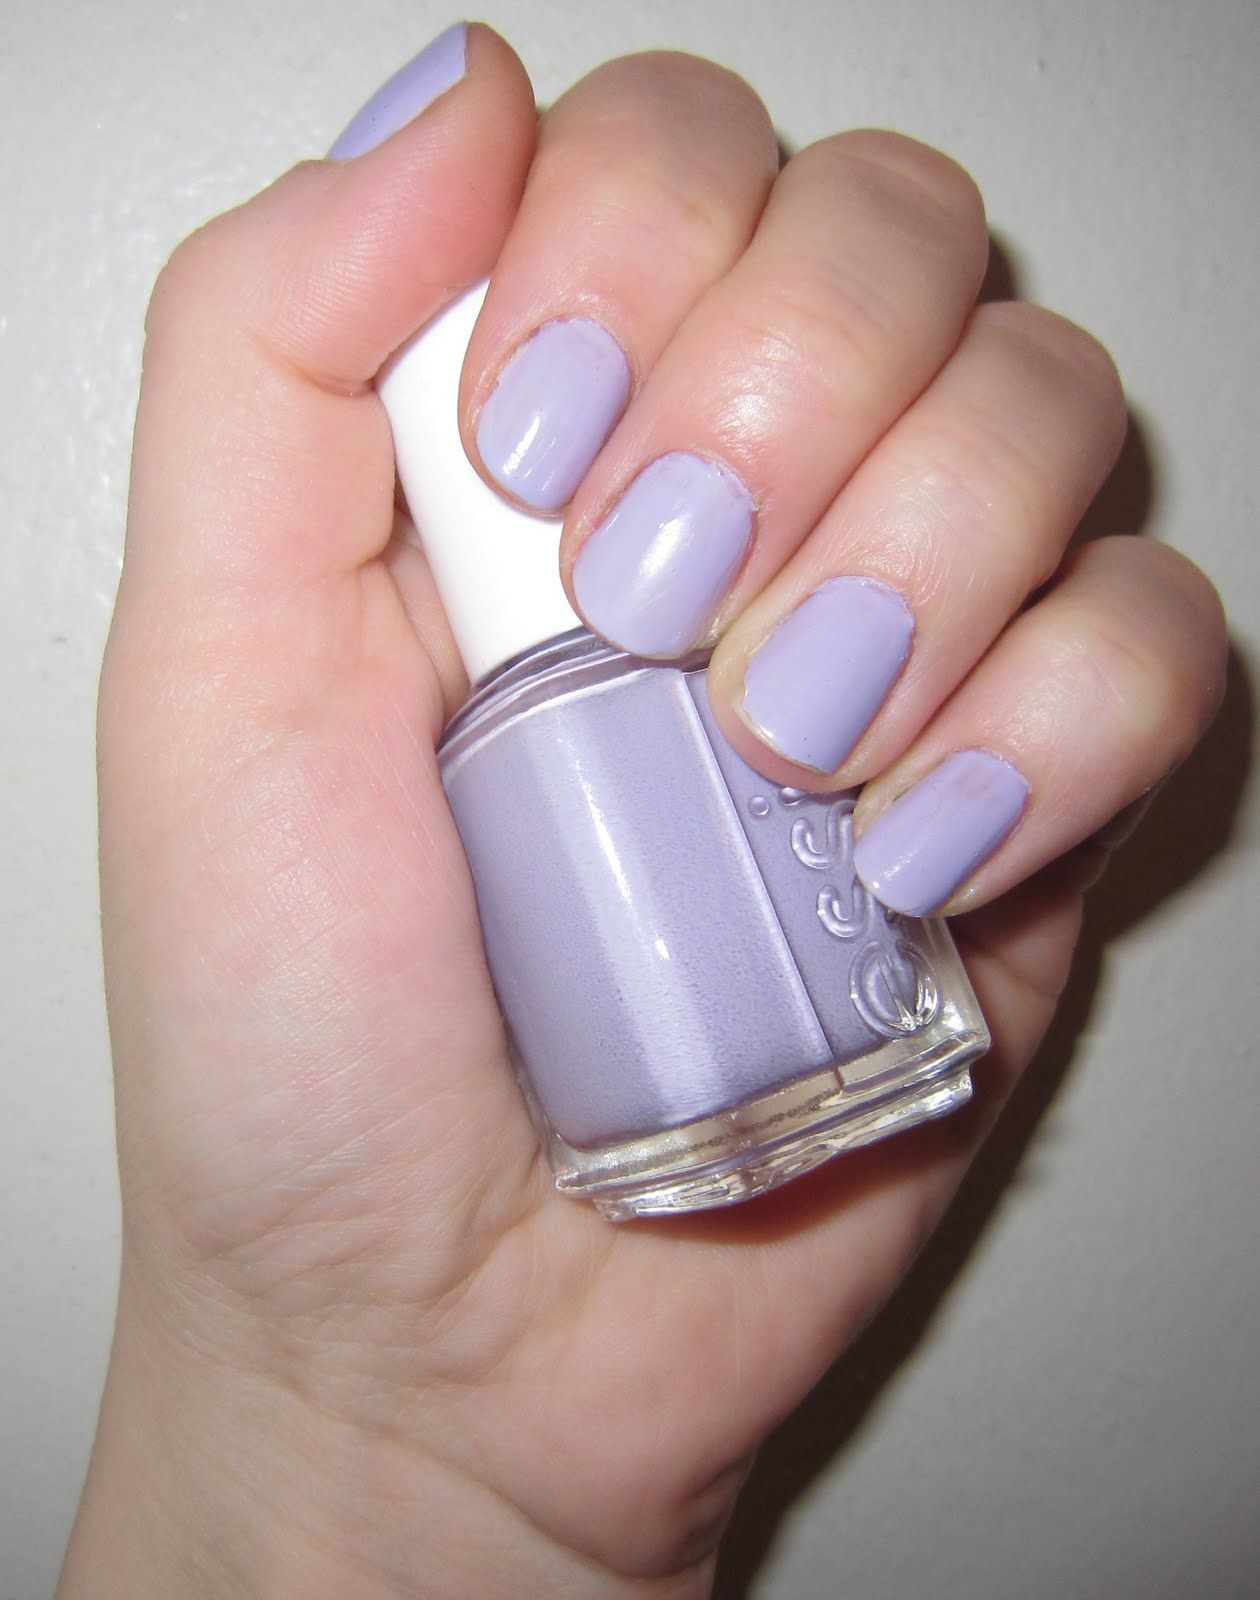 Essie Lilacism....my All Time Favorite Nail Polish Color